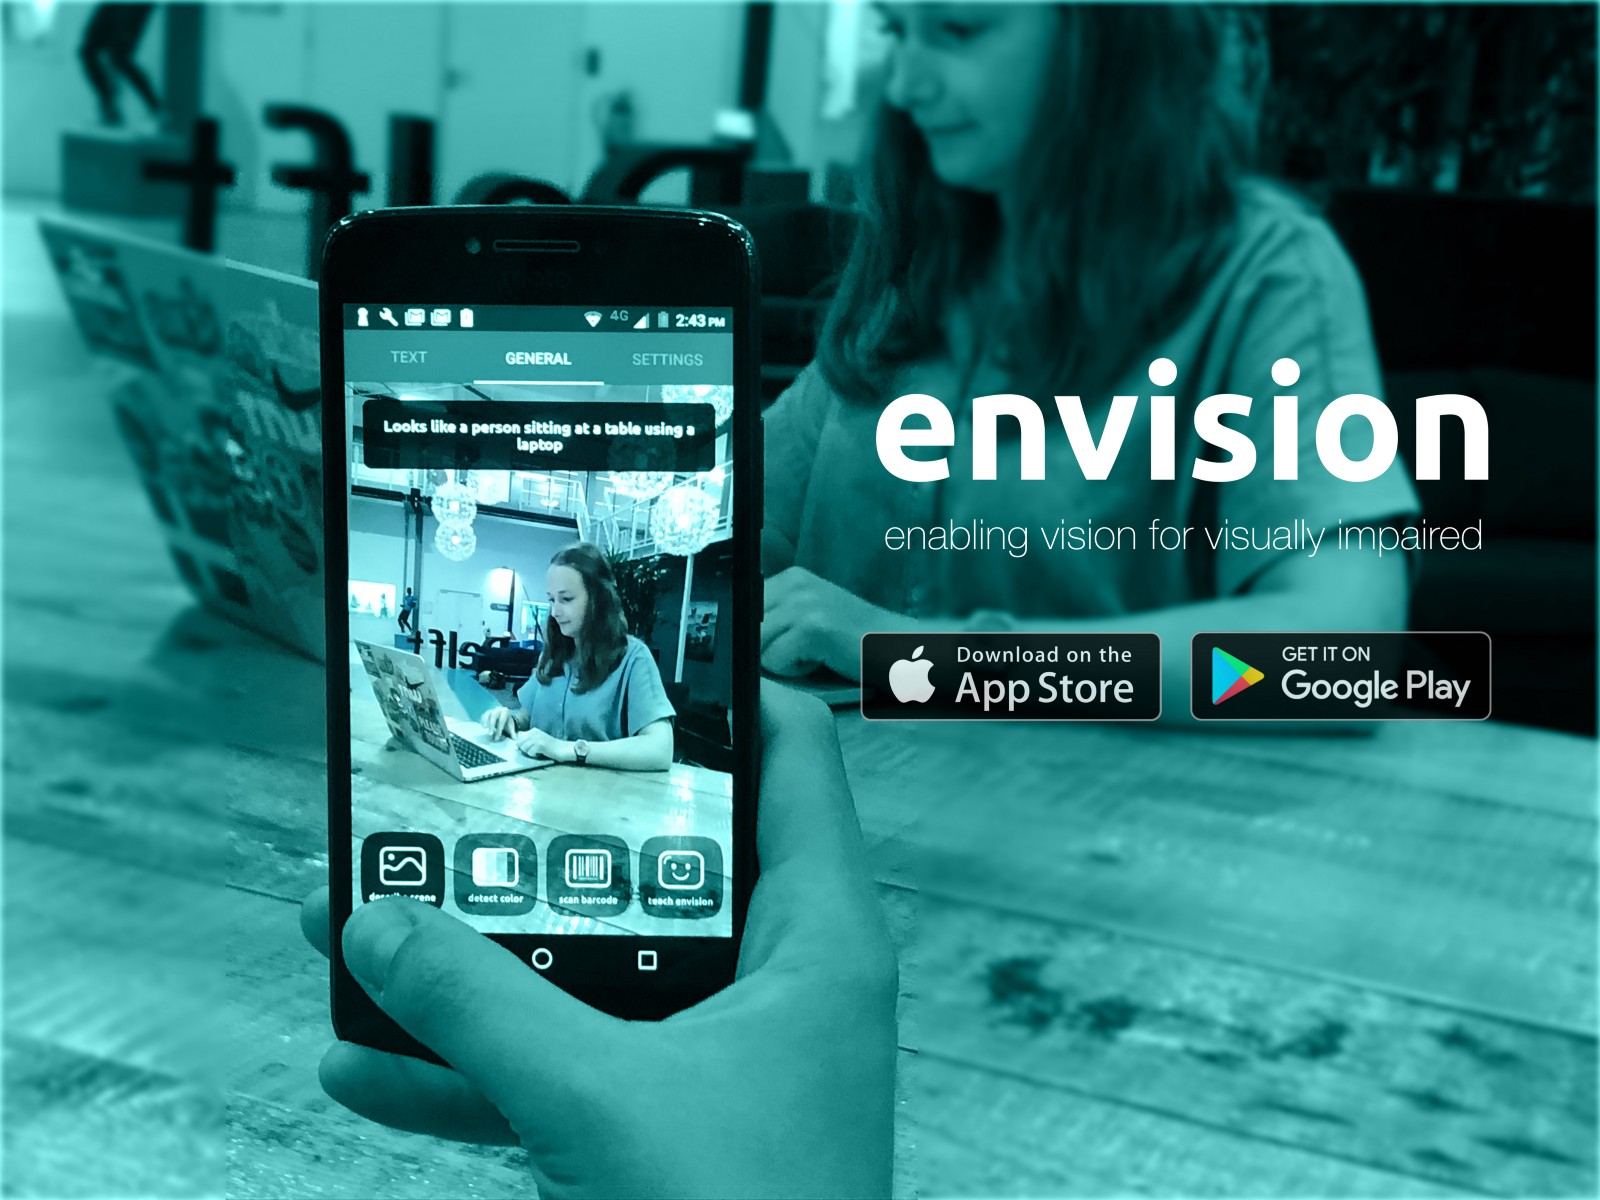 A person using the Scene Description function of Envision on an Android Smartphone